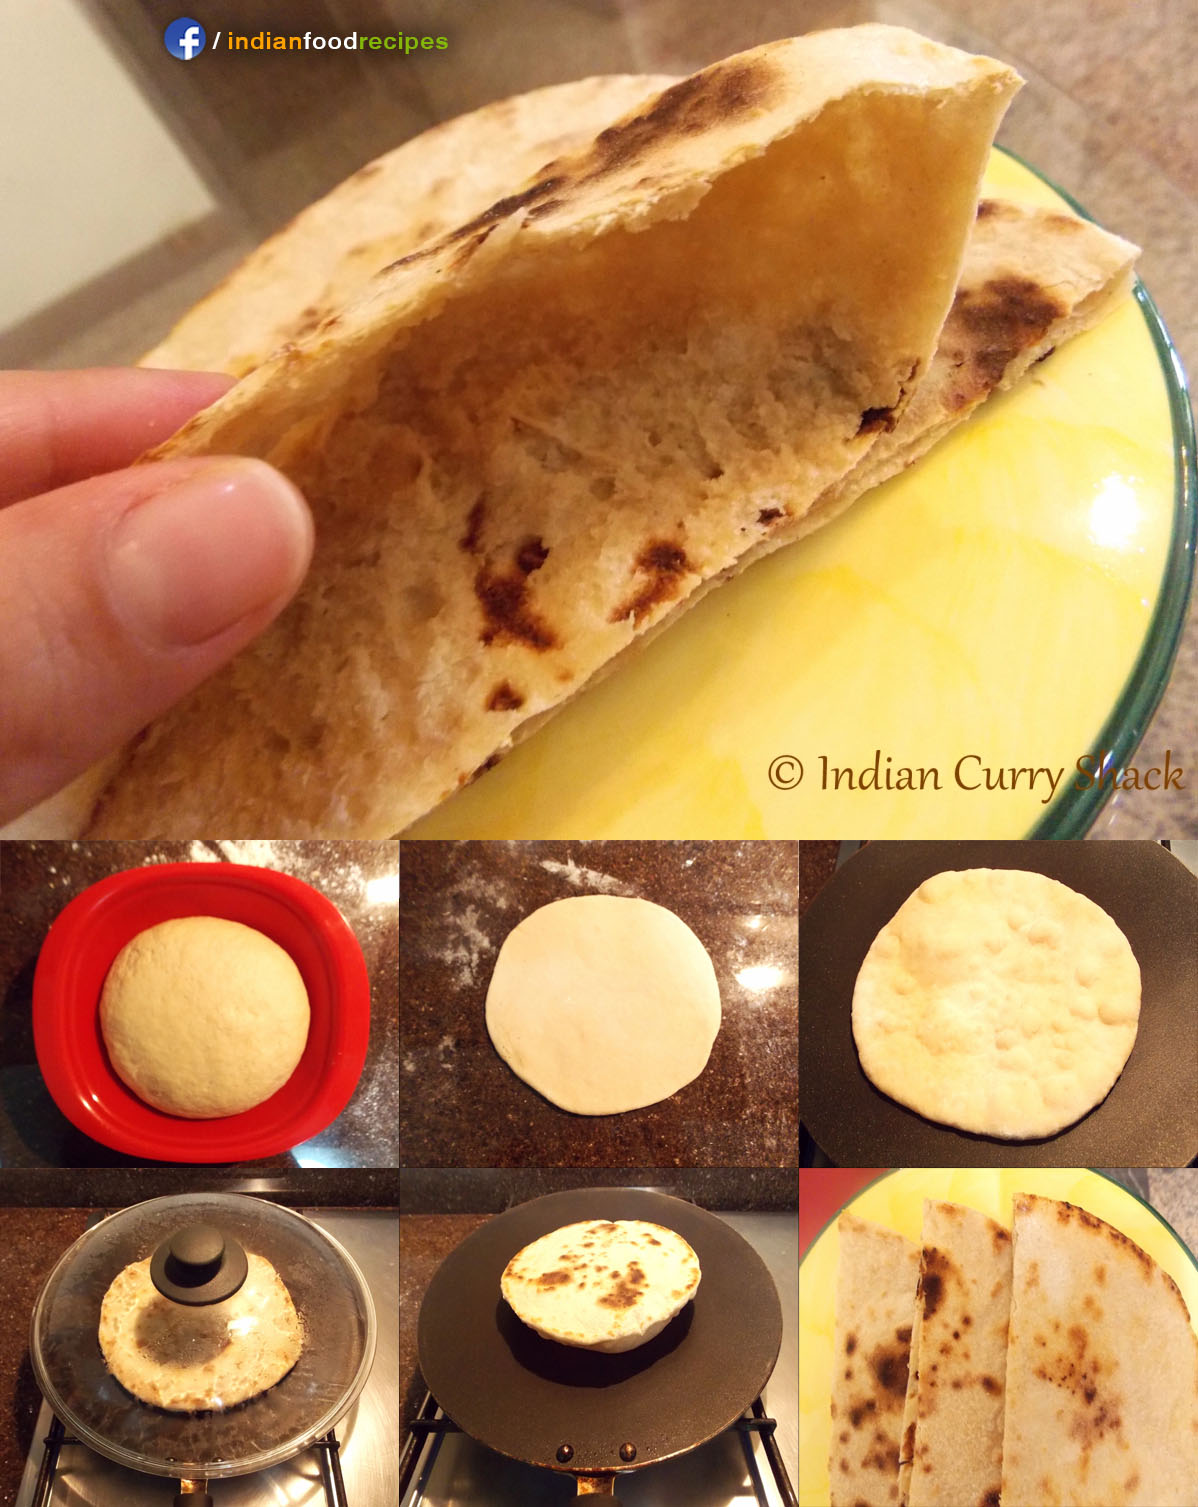 Pita Bread (Indo-Arabic) recipe step by step